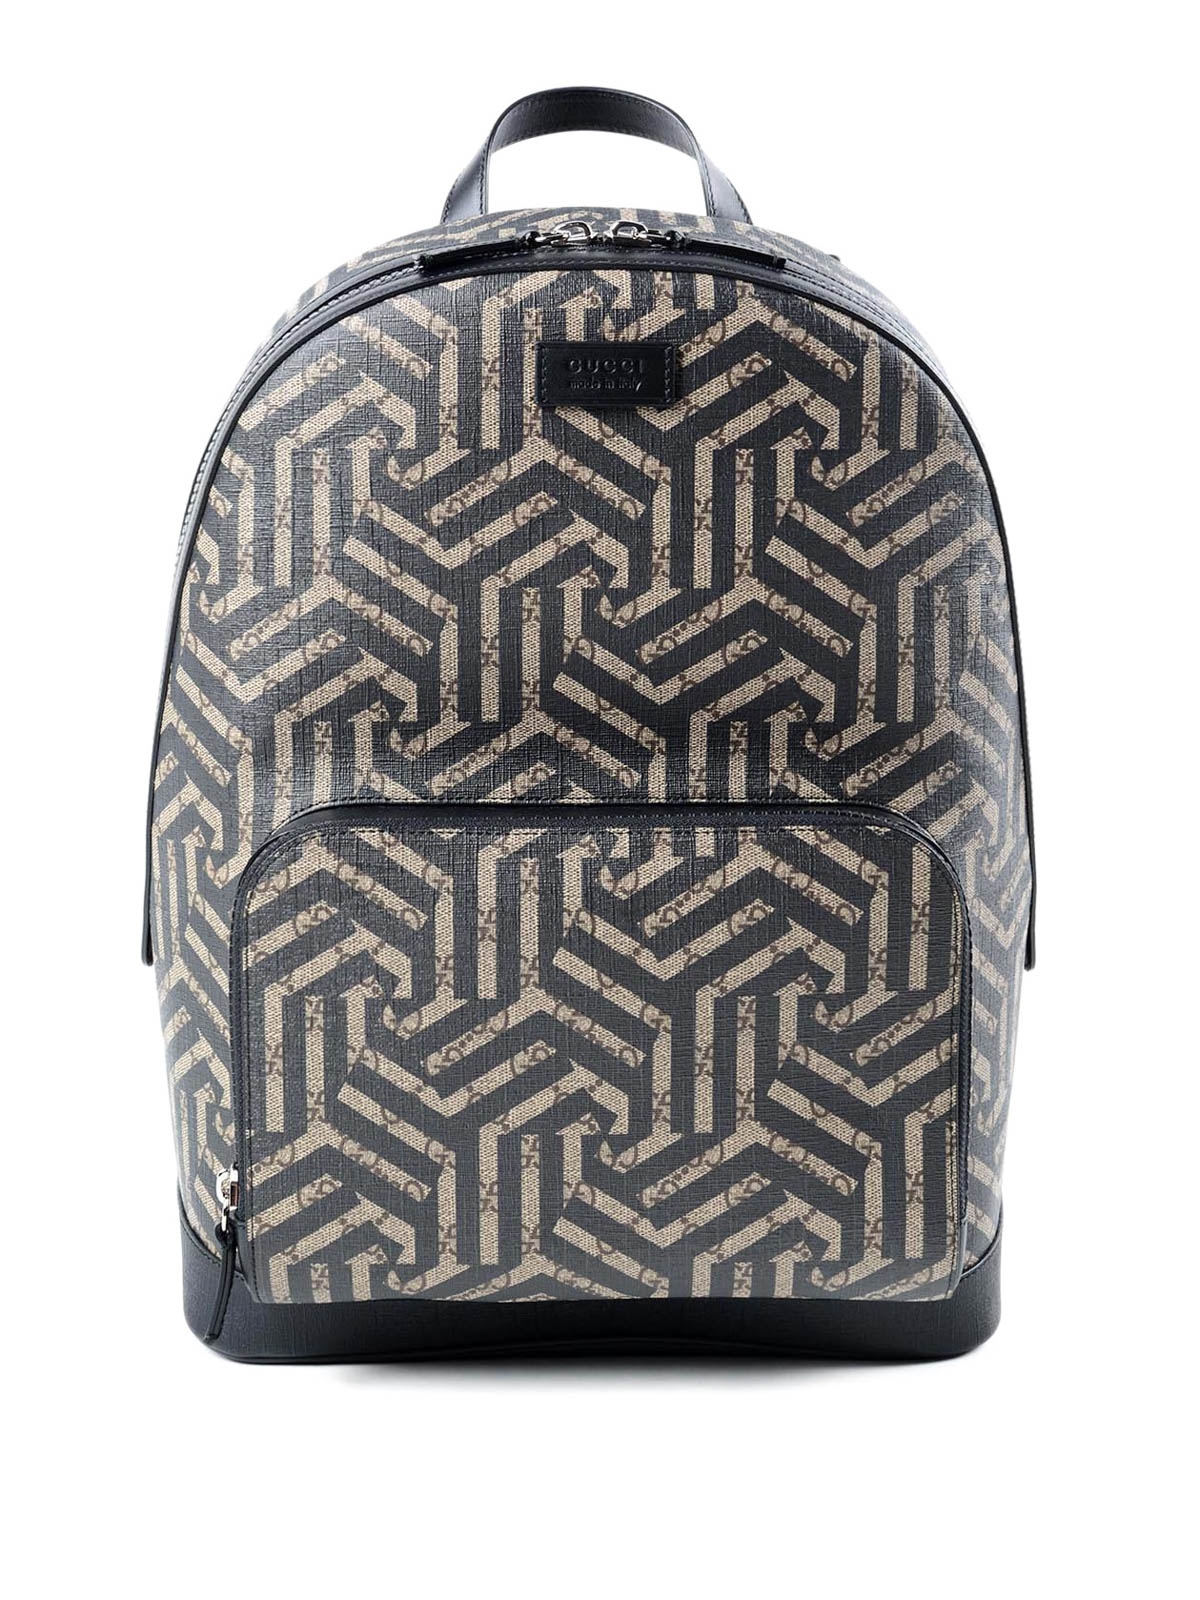 c145e3d8058d Gucci - Caleido print GG Supreme backpack - backpacks - 406370 KVW3X ...